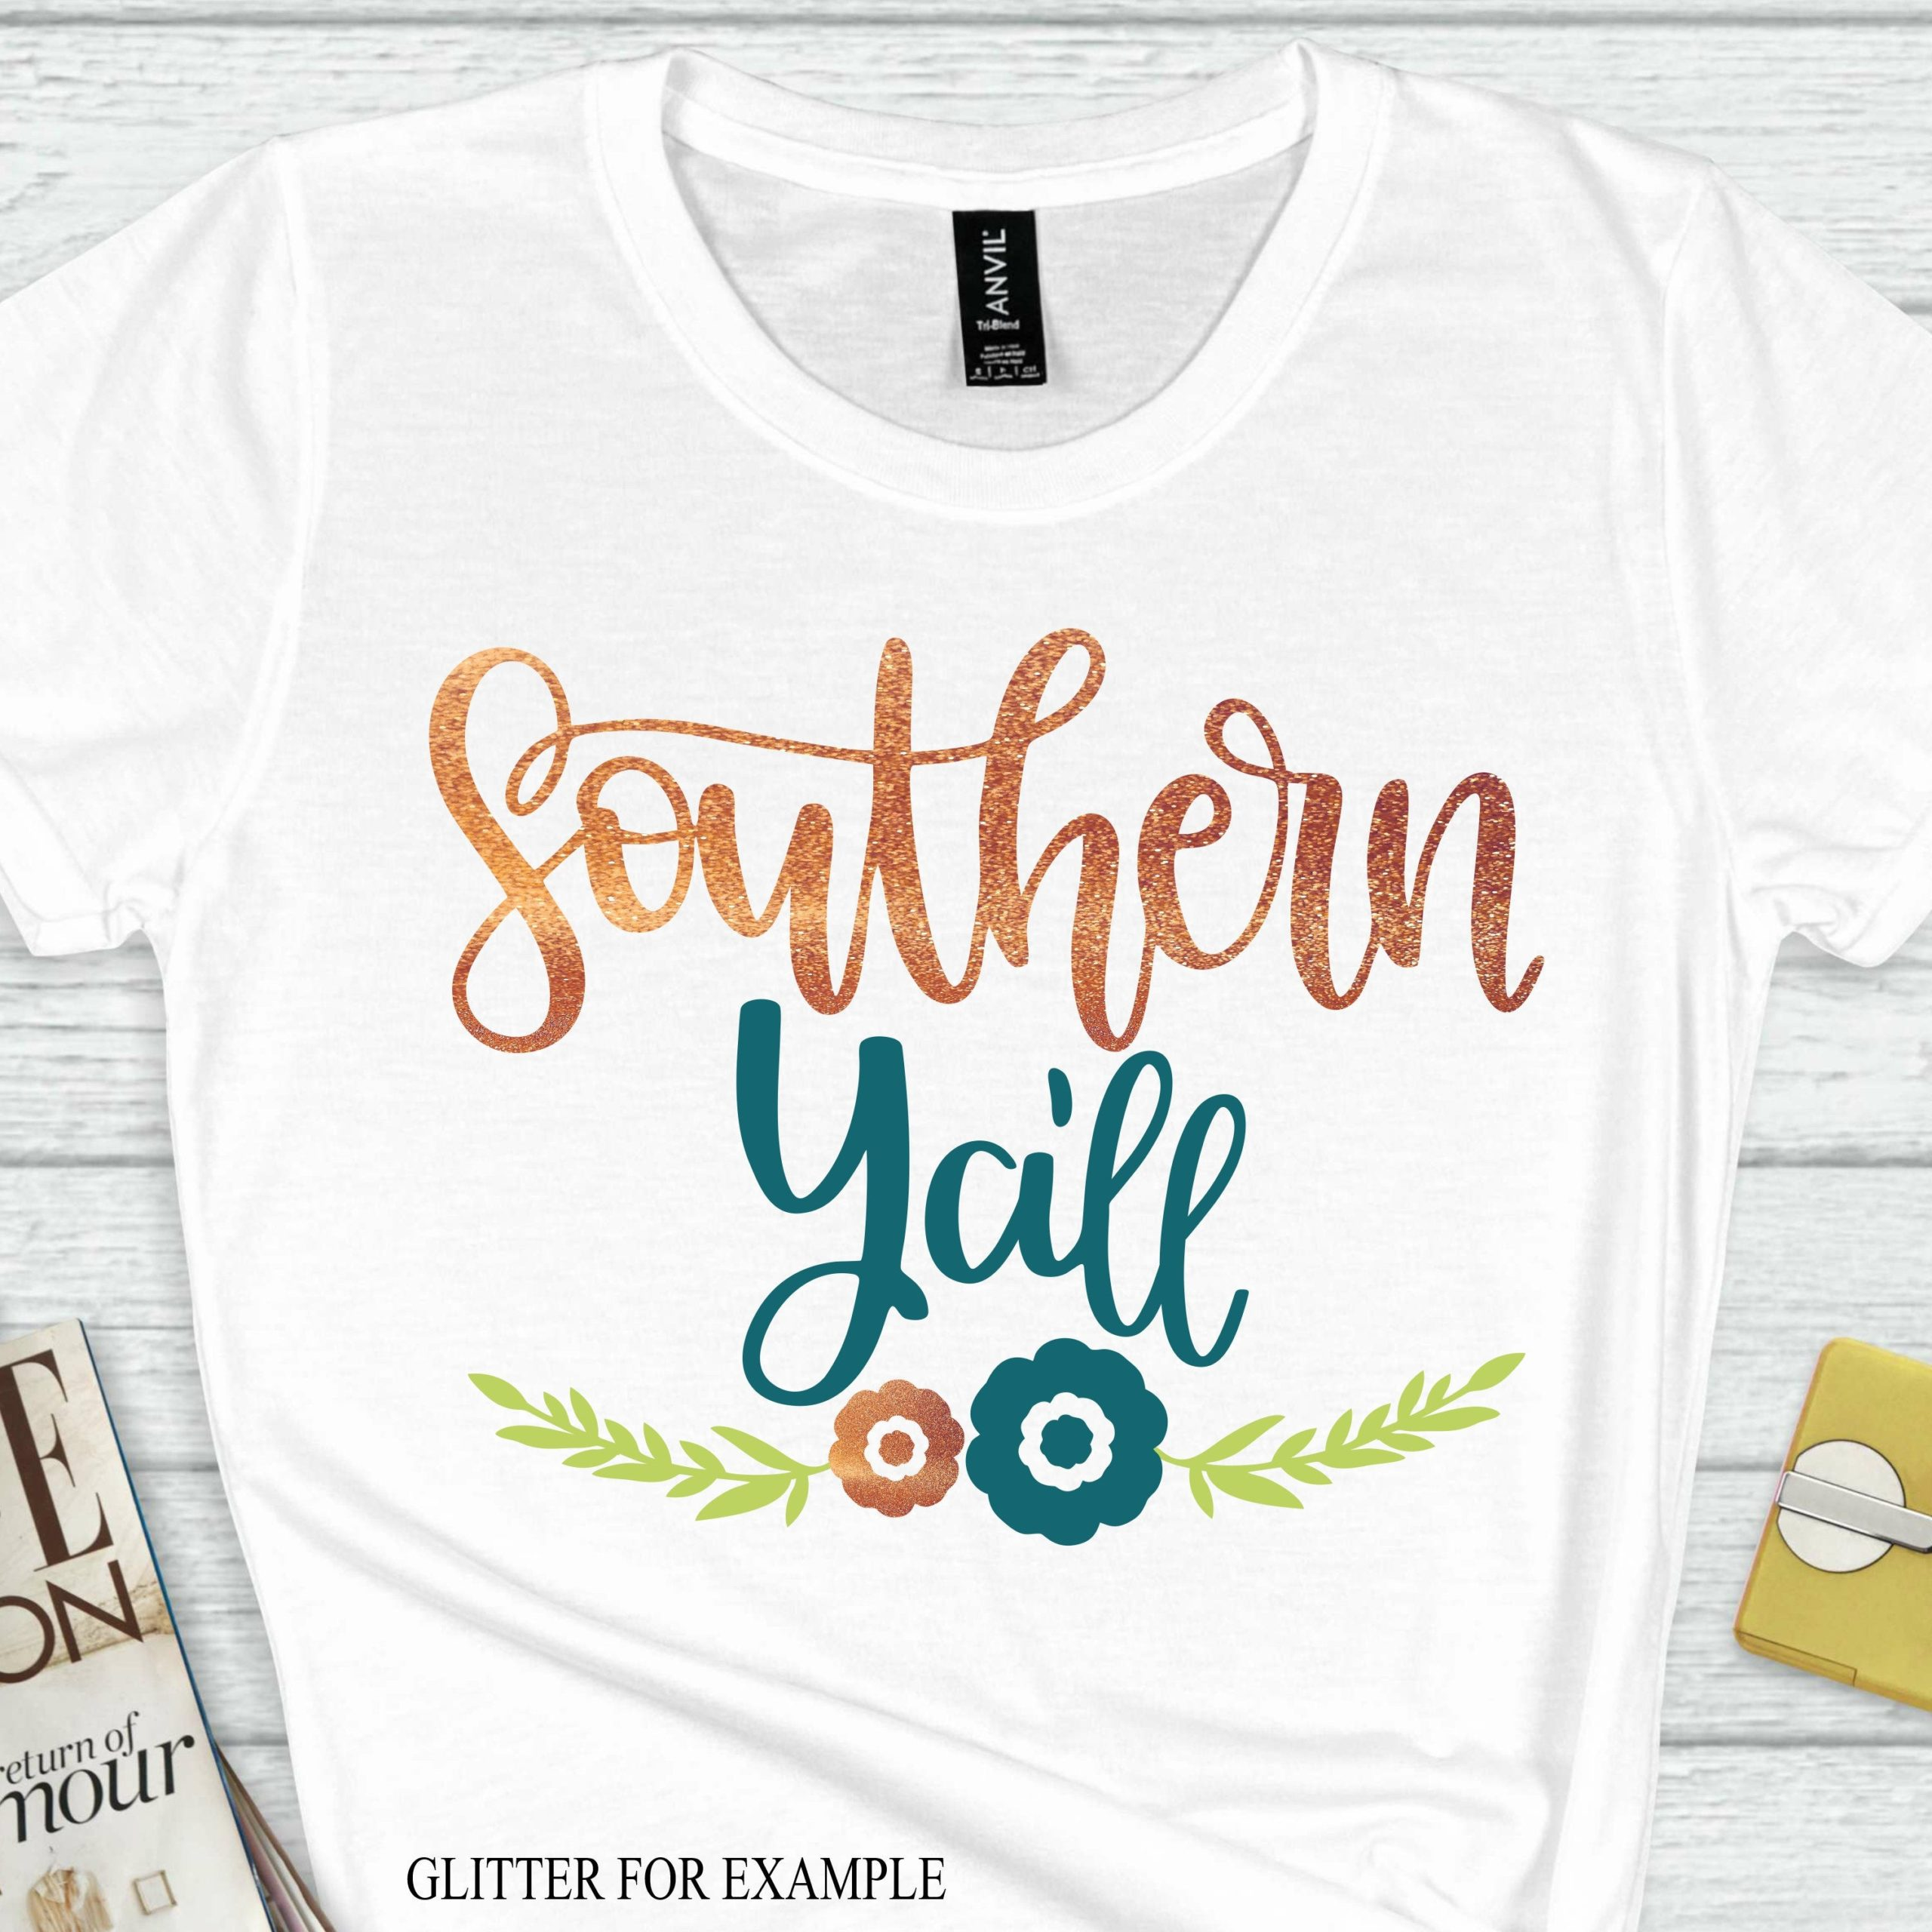 Southern-yall-svg-yall-svg-belle-svg-southern-svg-country-svg-southern-saying-svg-svg-for-cricut-silhouette-cut-file-5ef78efb